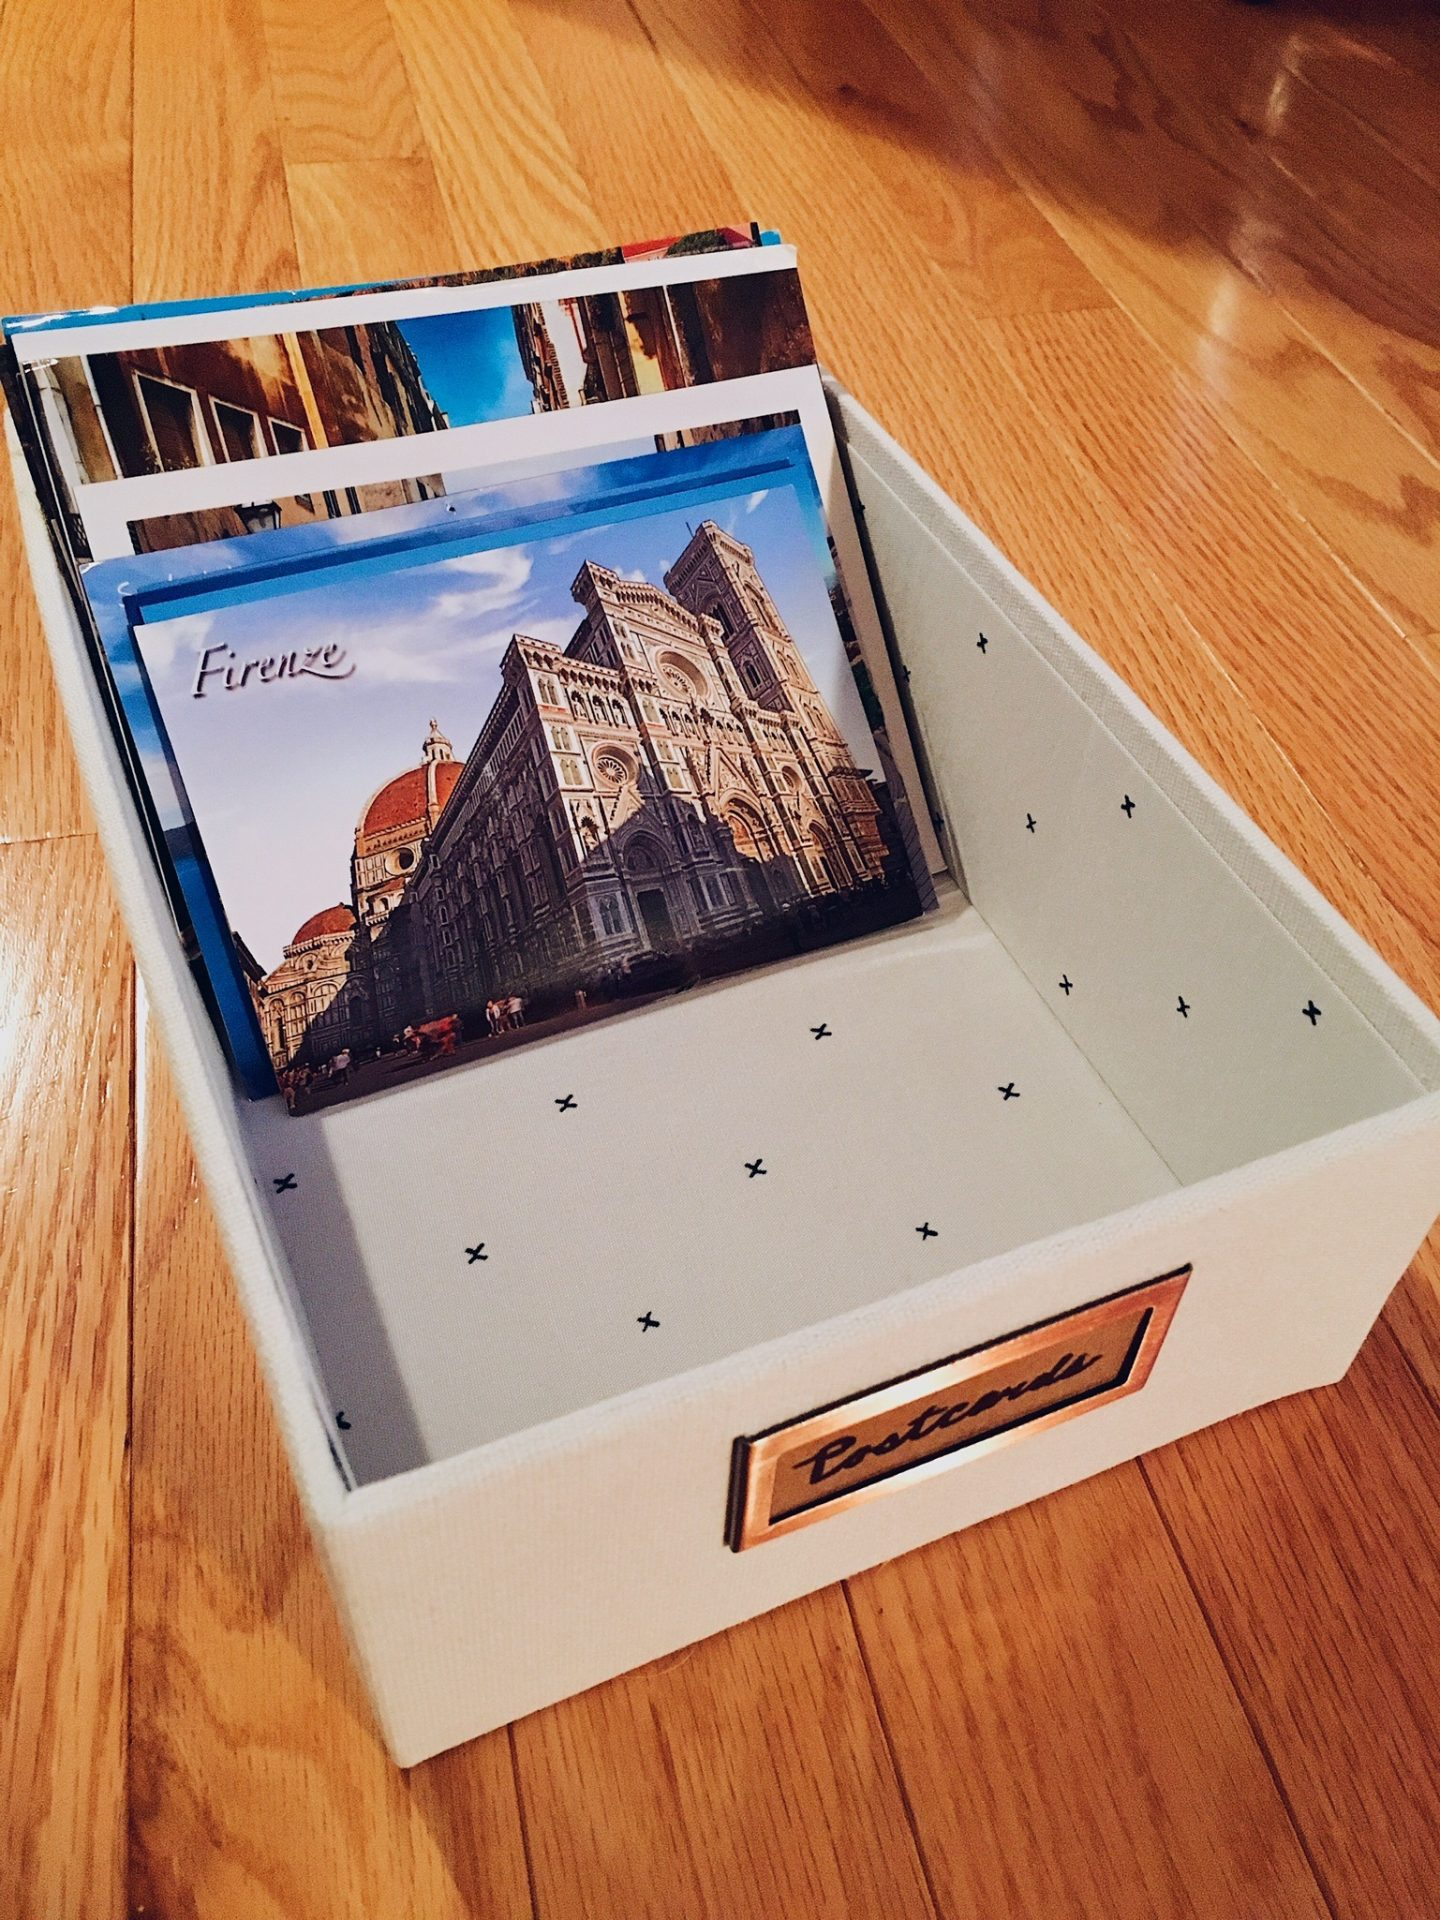 My postcard collection in a box in my room